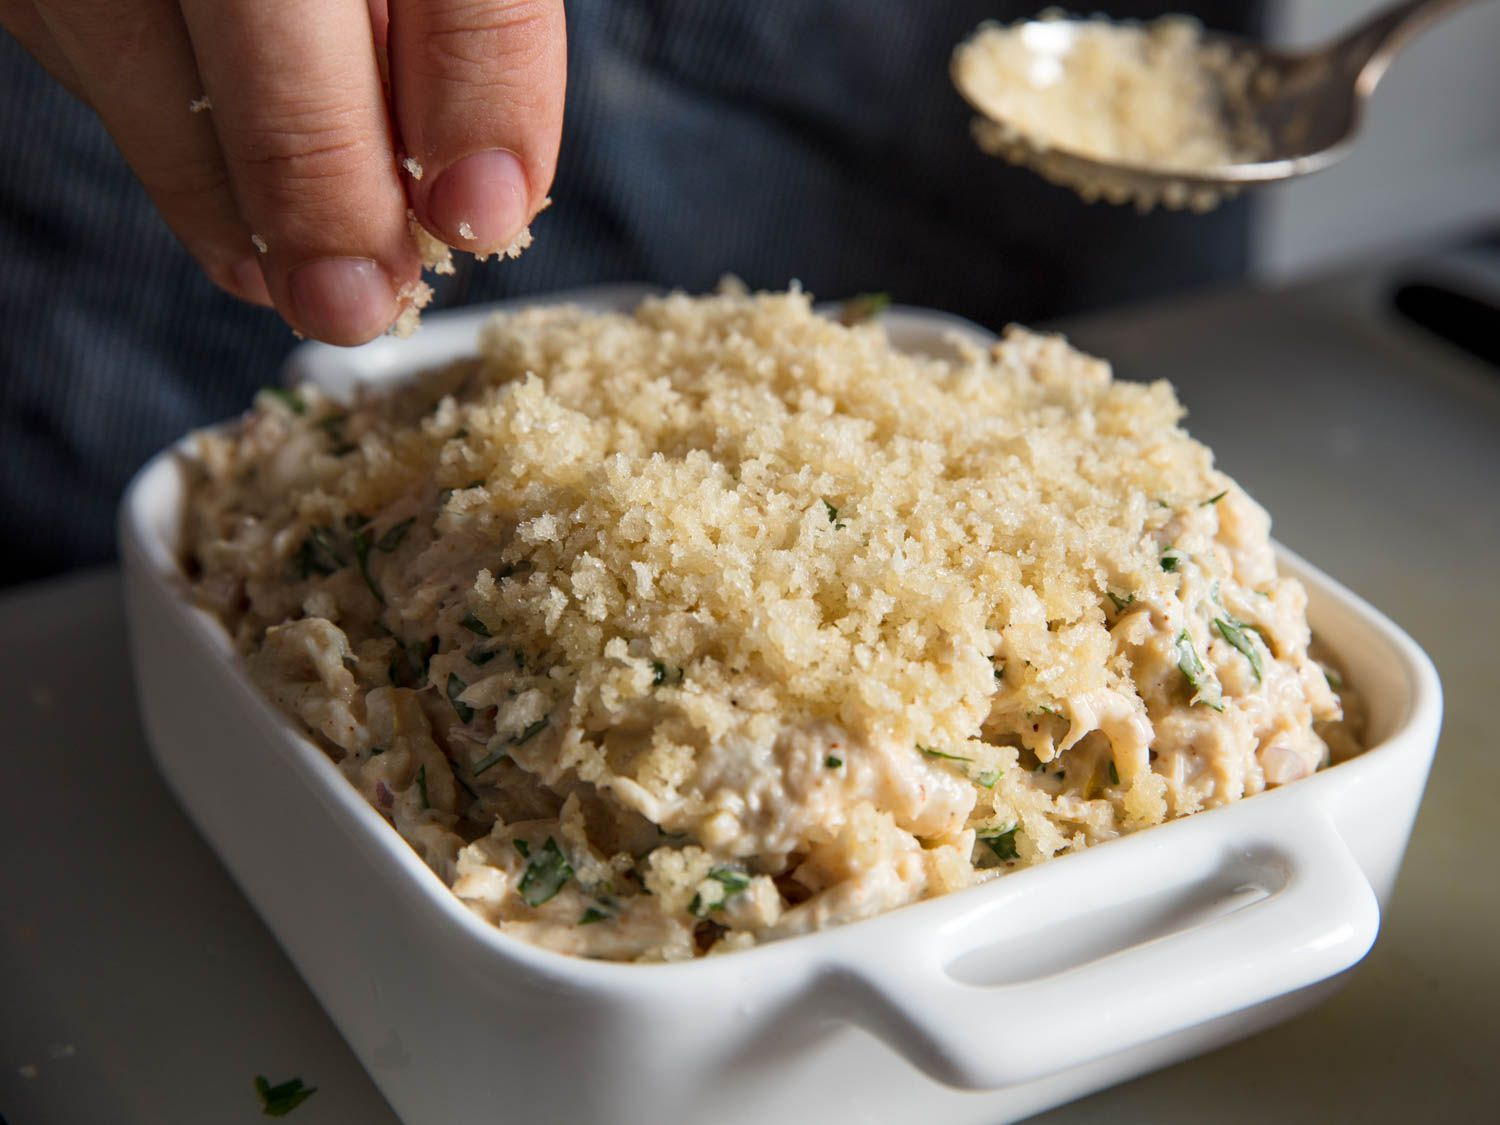 Adding buttered bread crumbs as a topping to a white ceramic baking dish of crab imperial